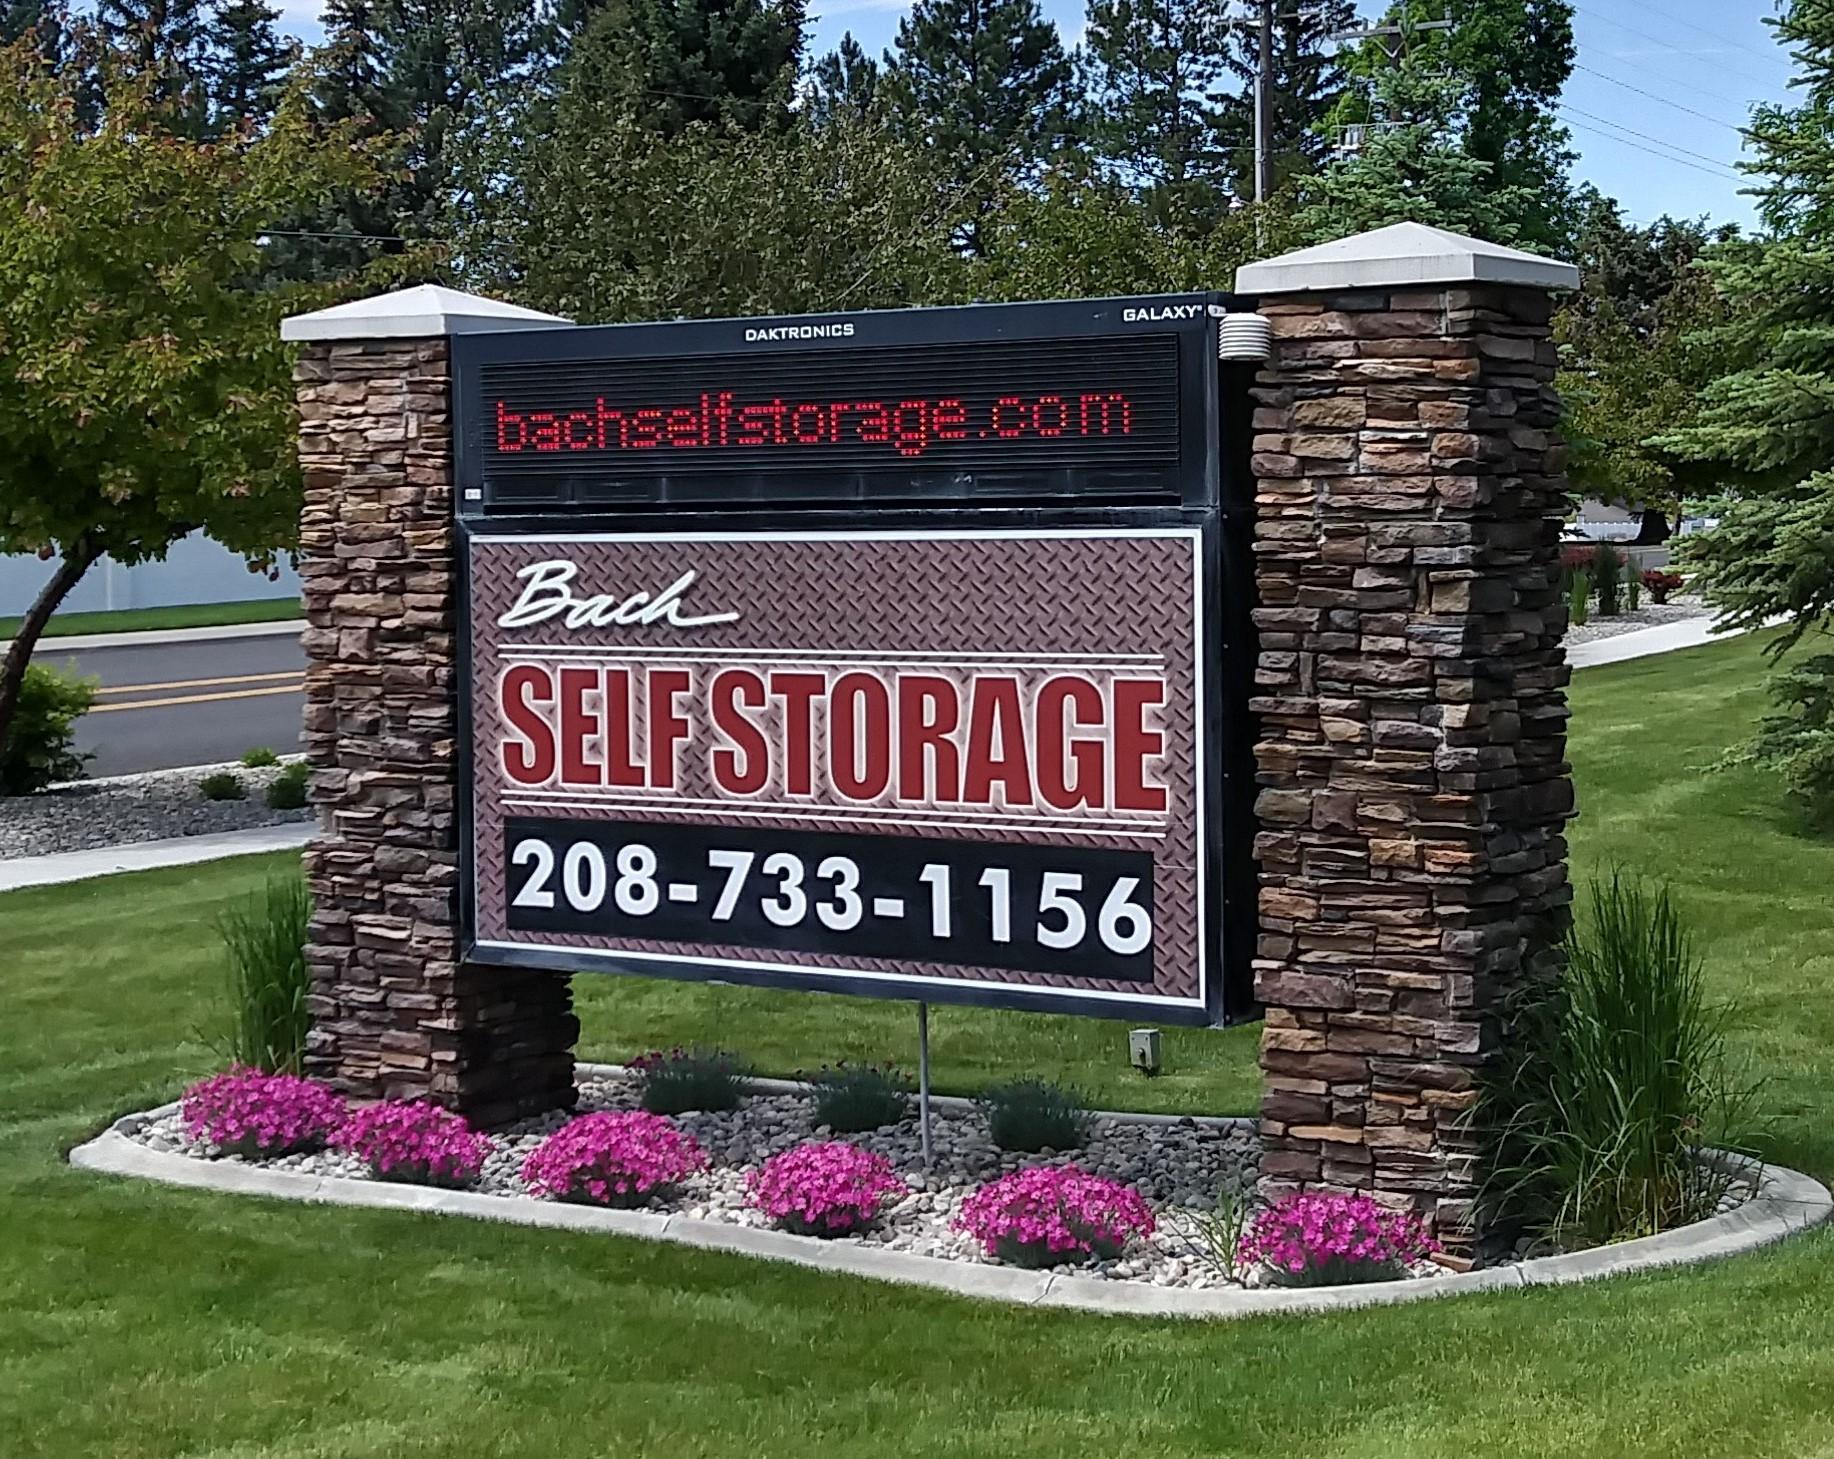 Bach Self Storage in ID